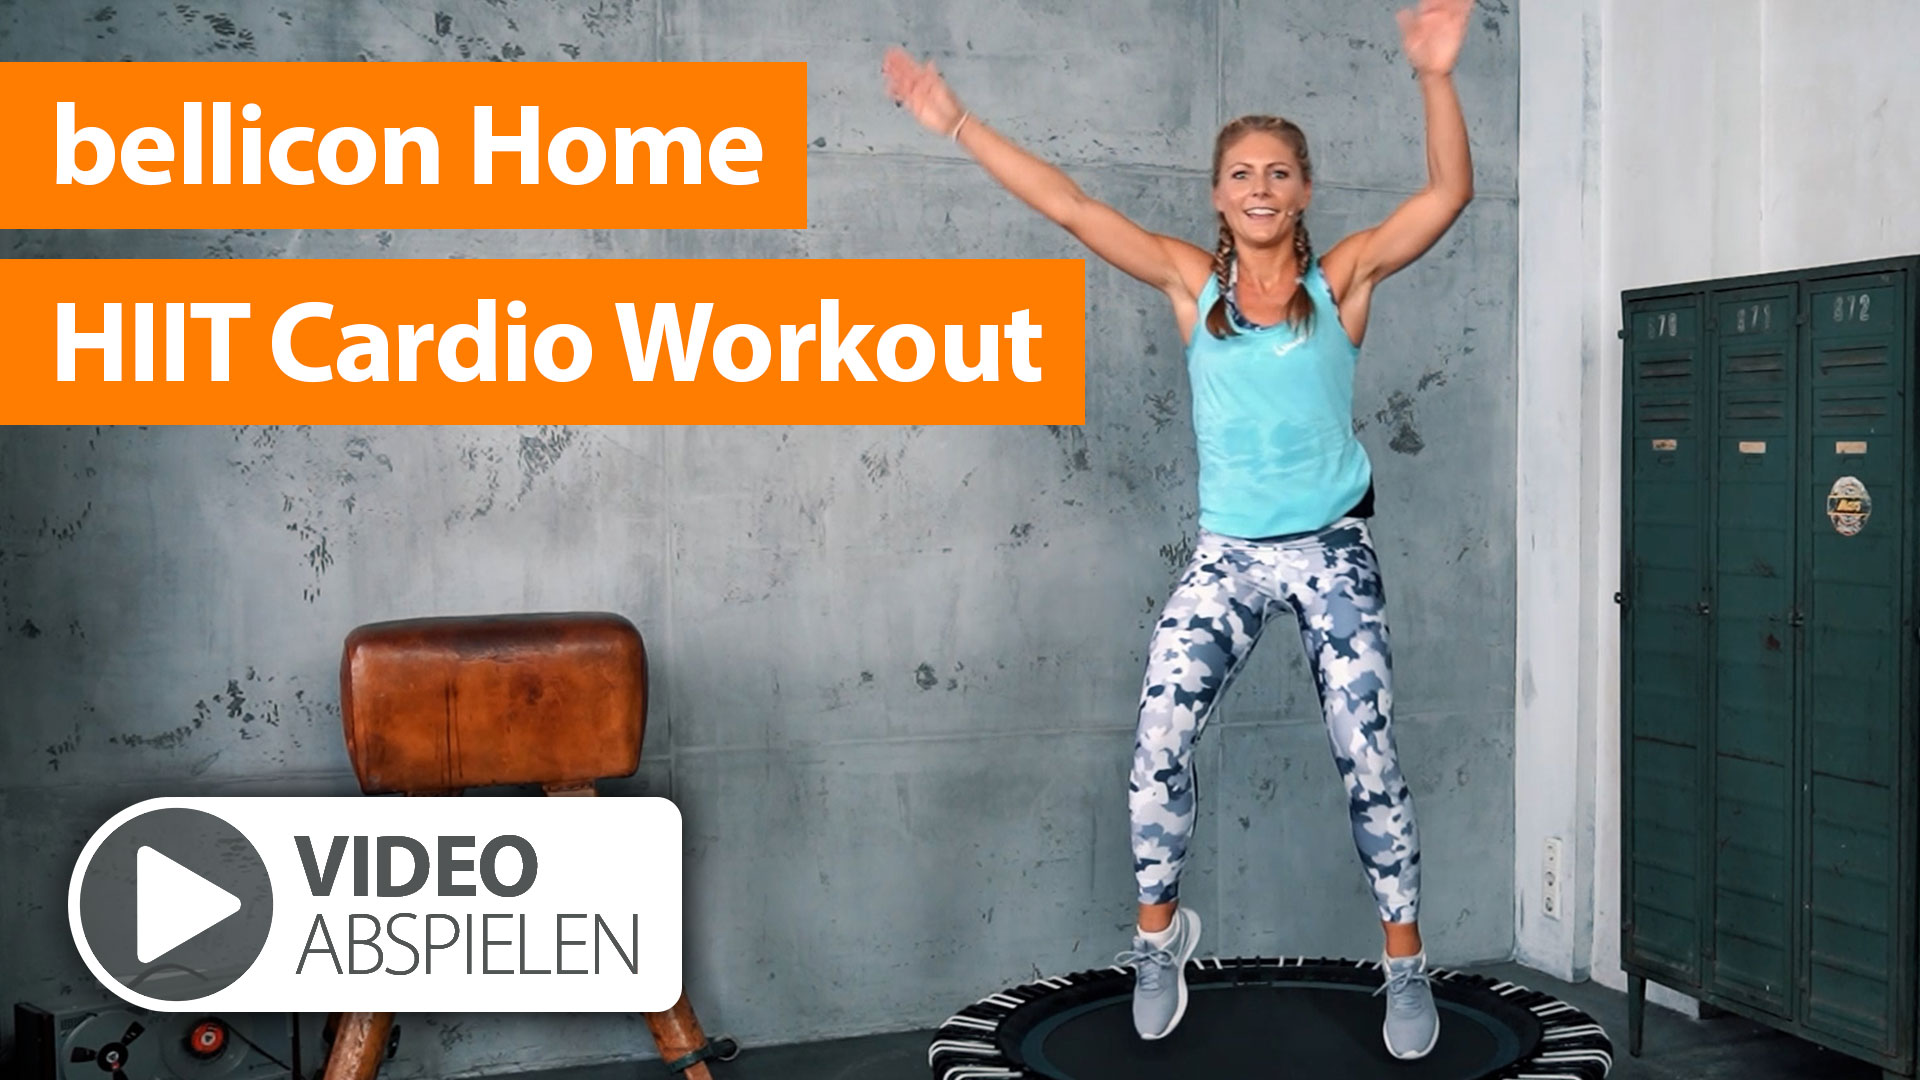 bellicon Home: HIIT Cardio Workout